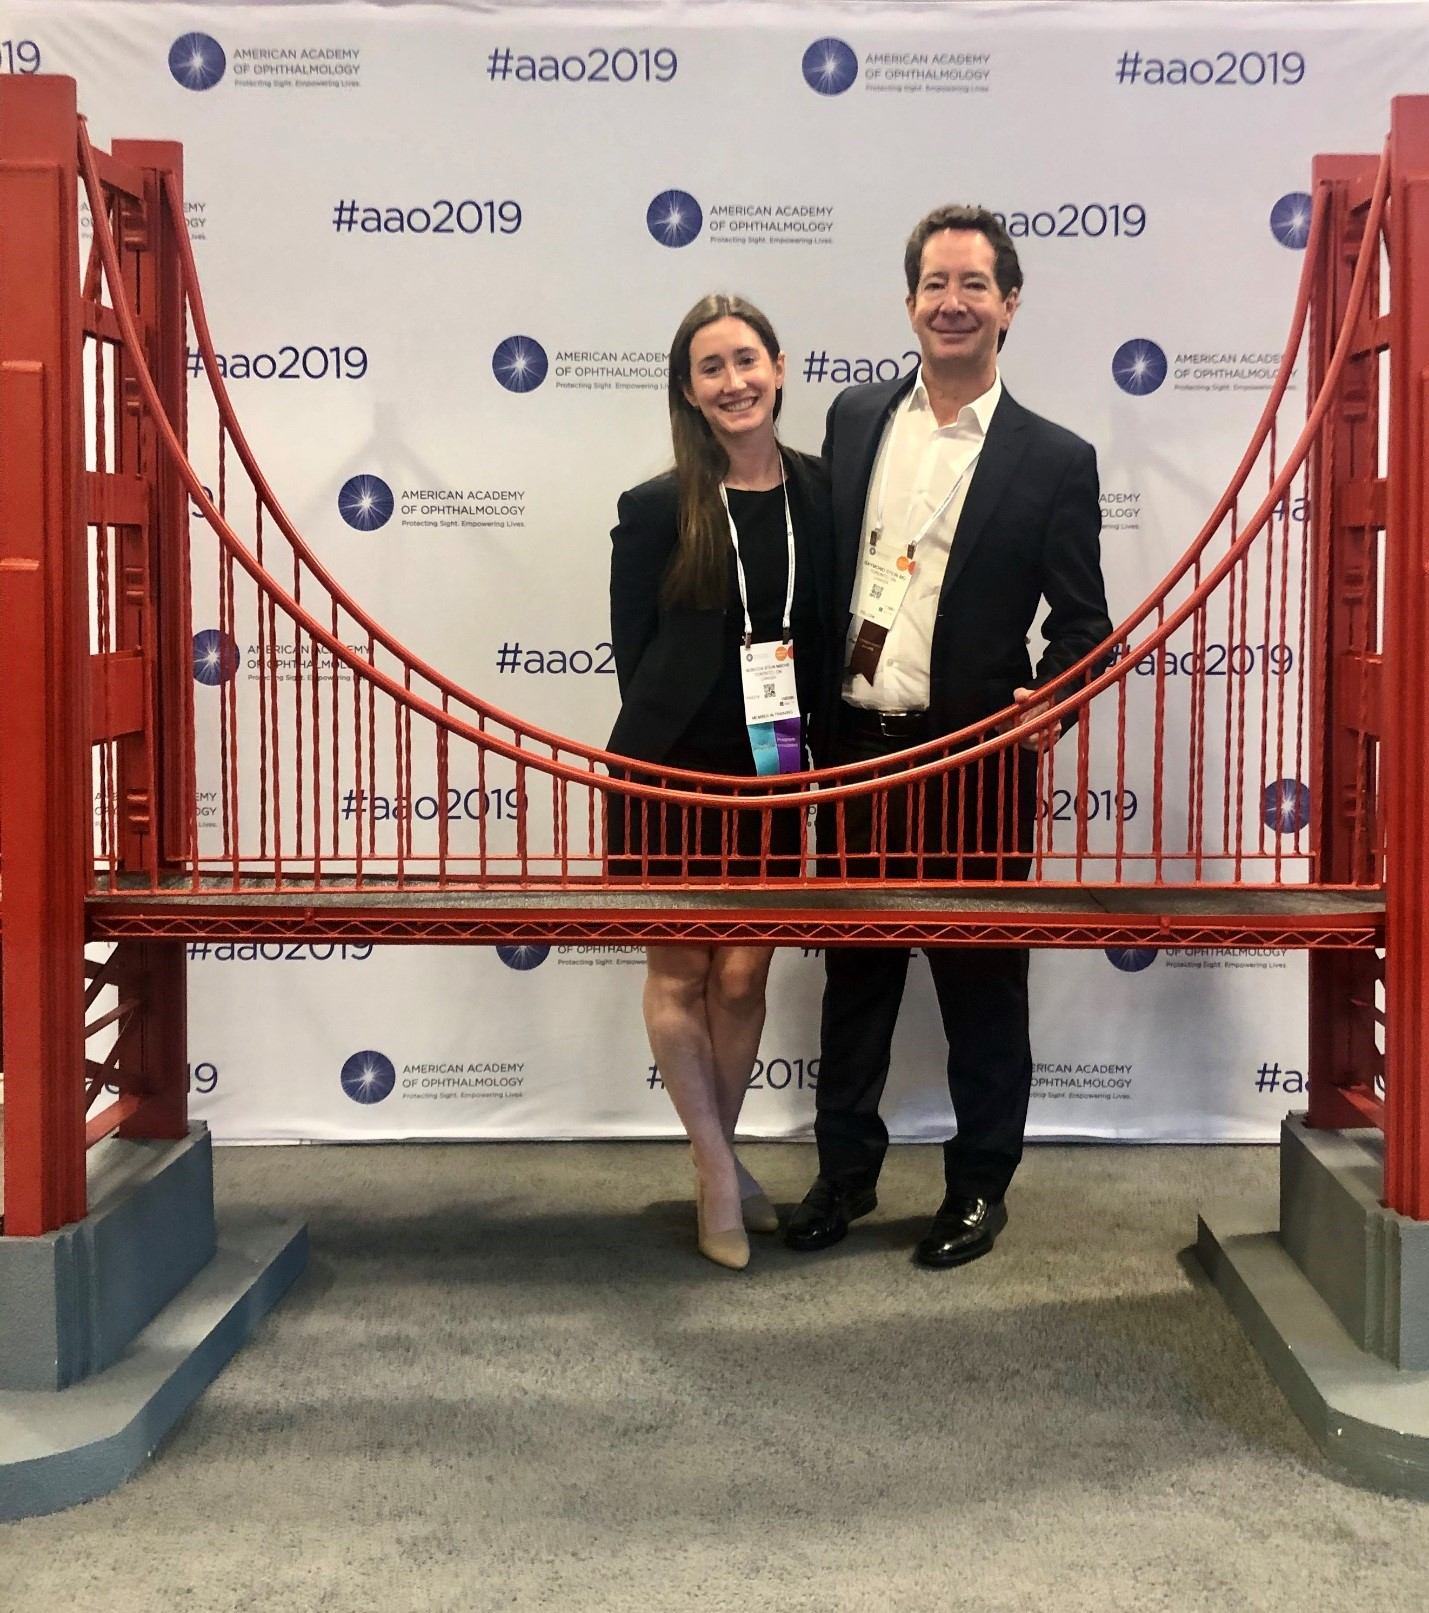 American Academy of Ophthalmology's Annual Conference 2019